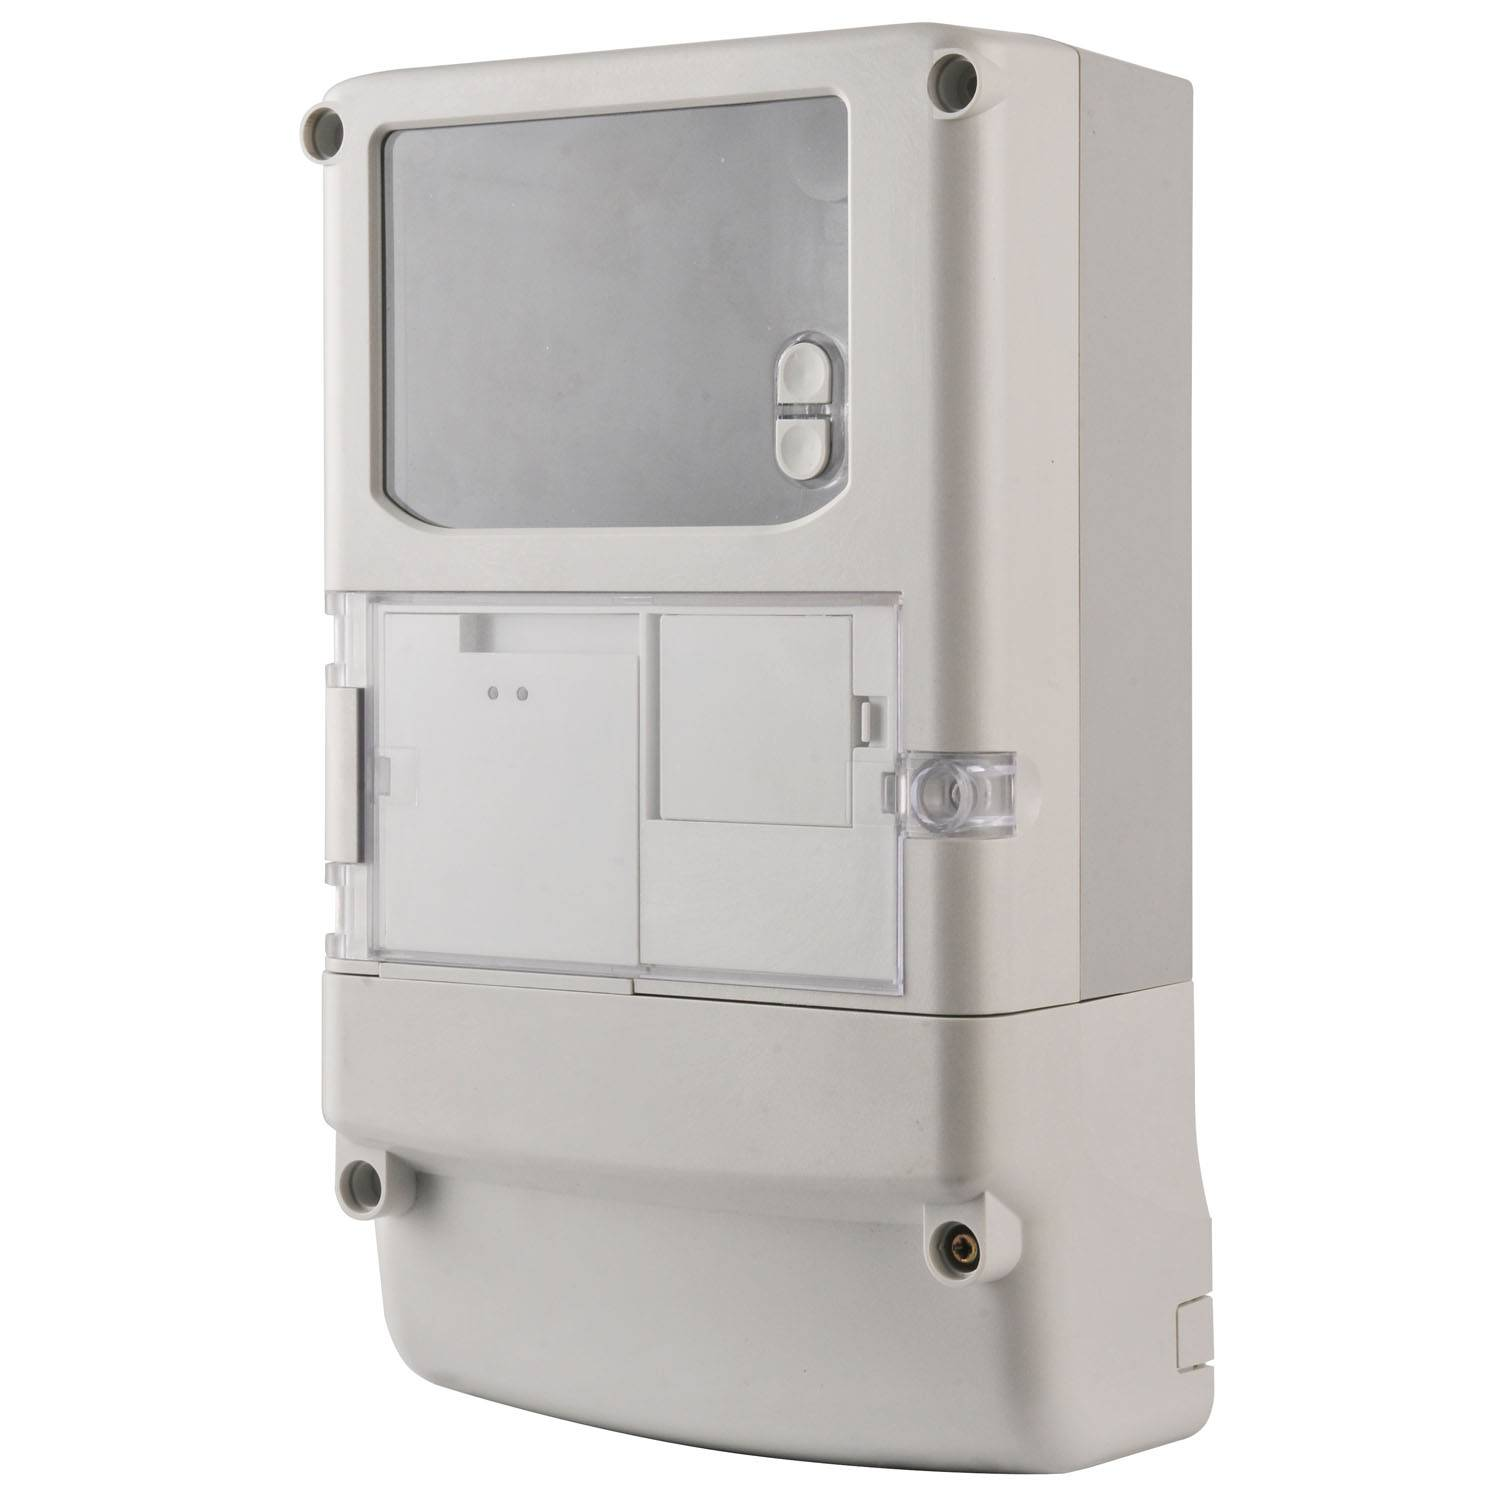 Three Phase Electric Enclosure Wall Mount (DTSD-3060-7) rot proof